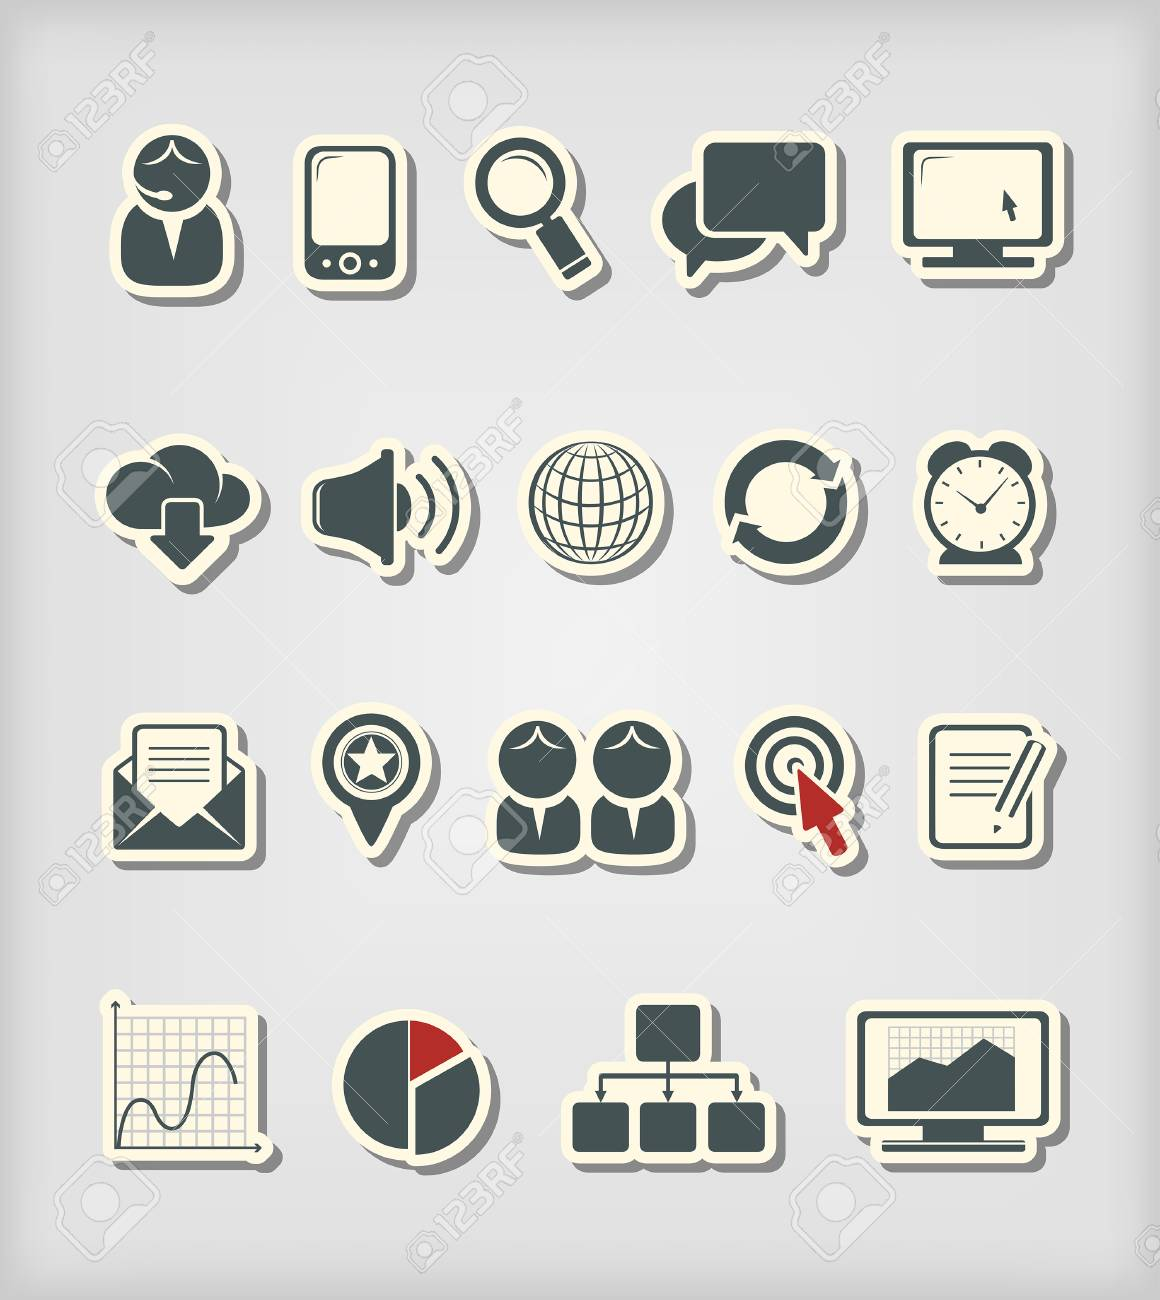 Business and media icons Stock Vector - 22921994